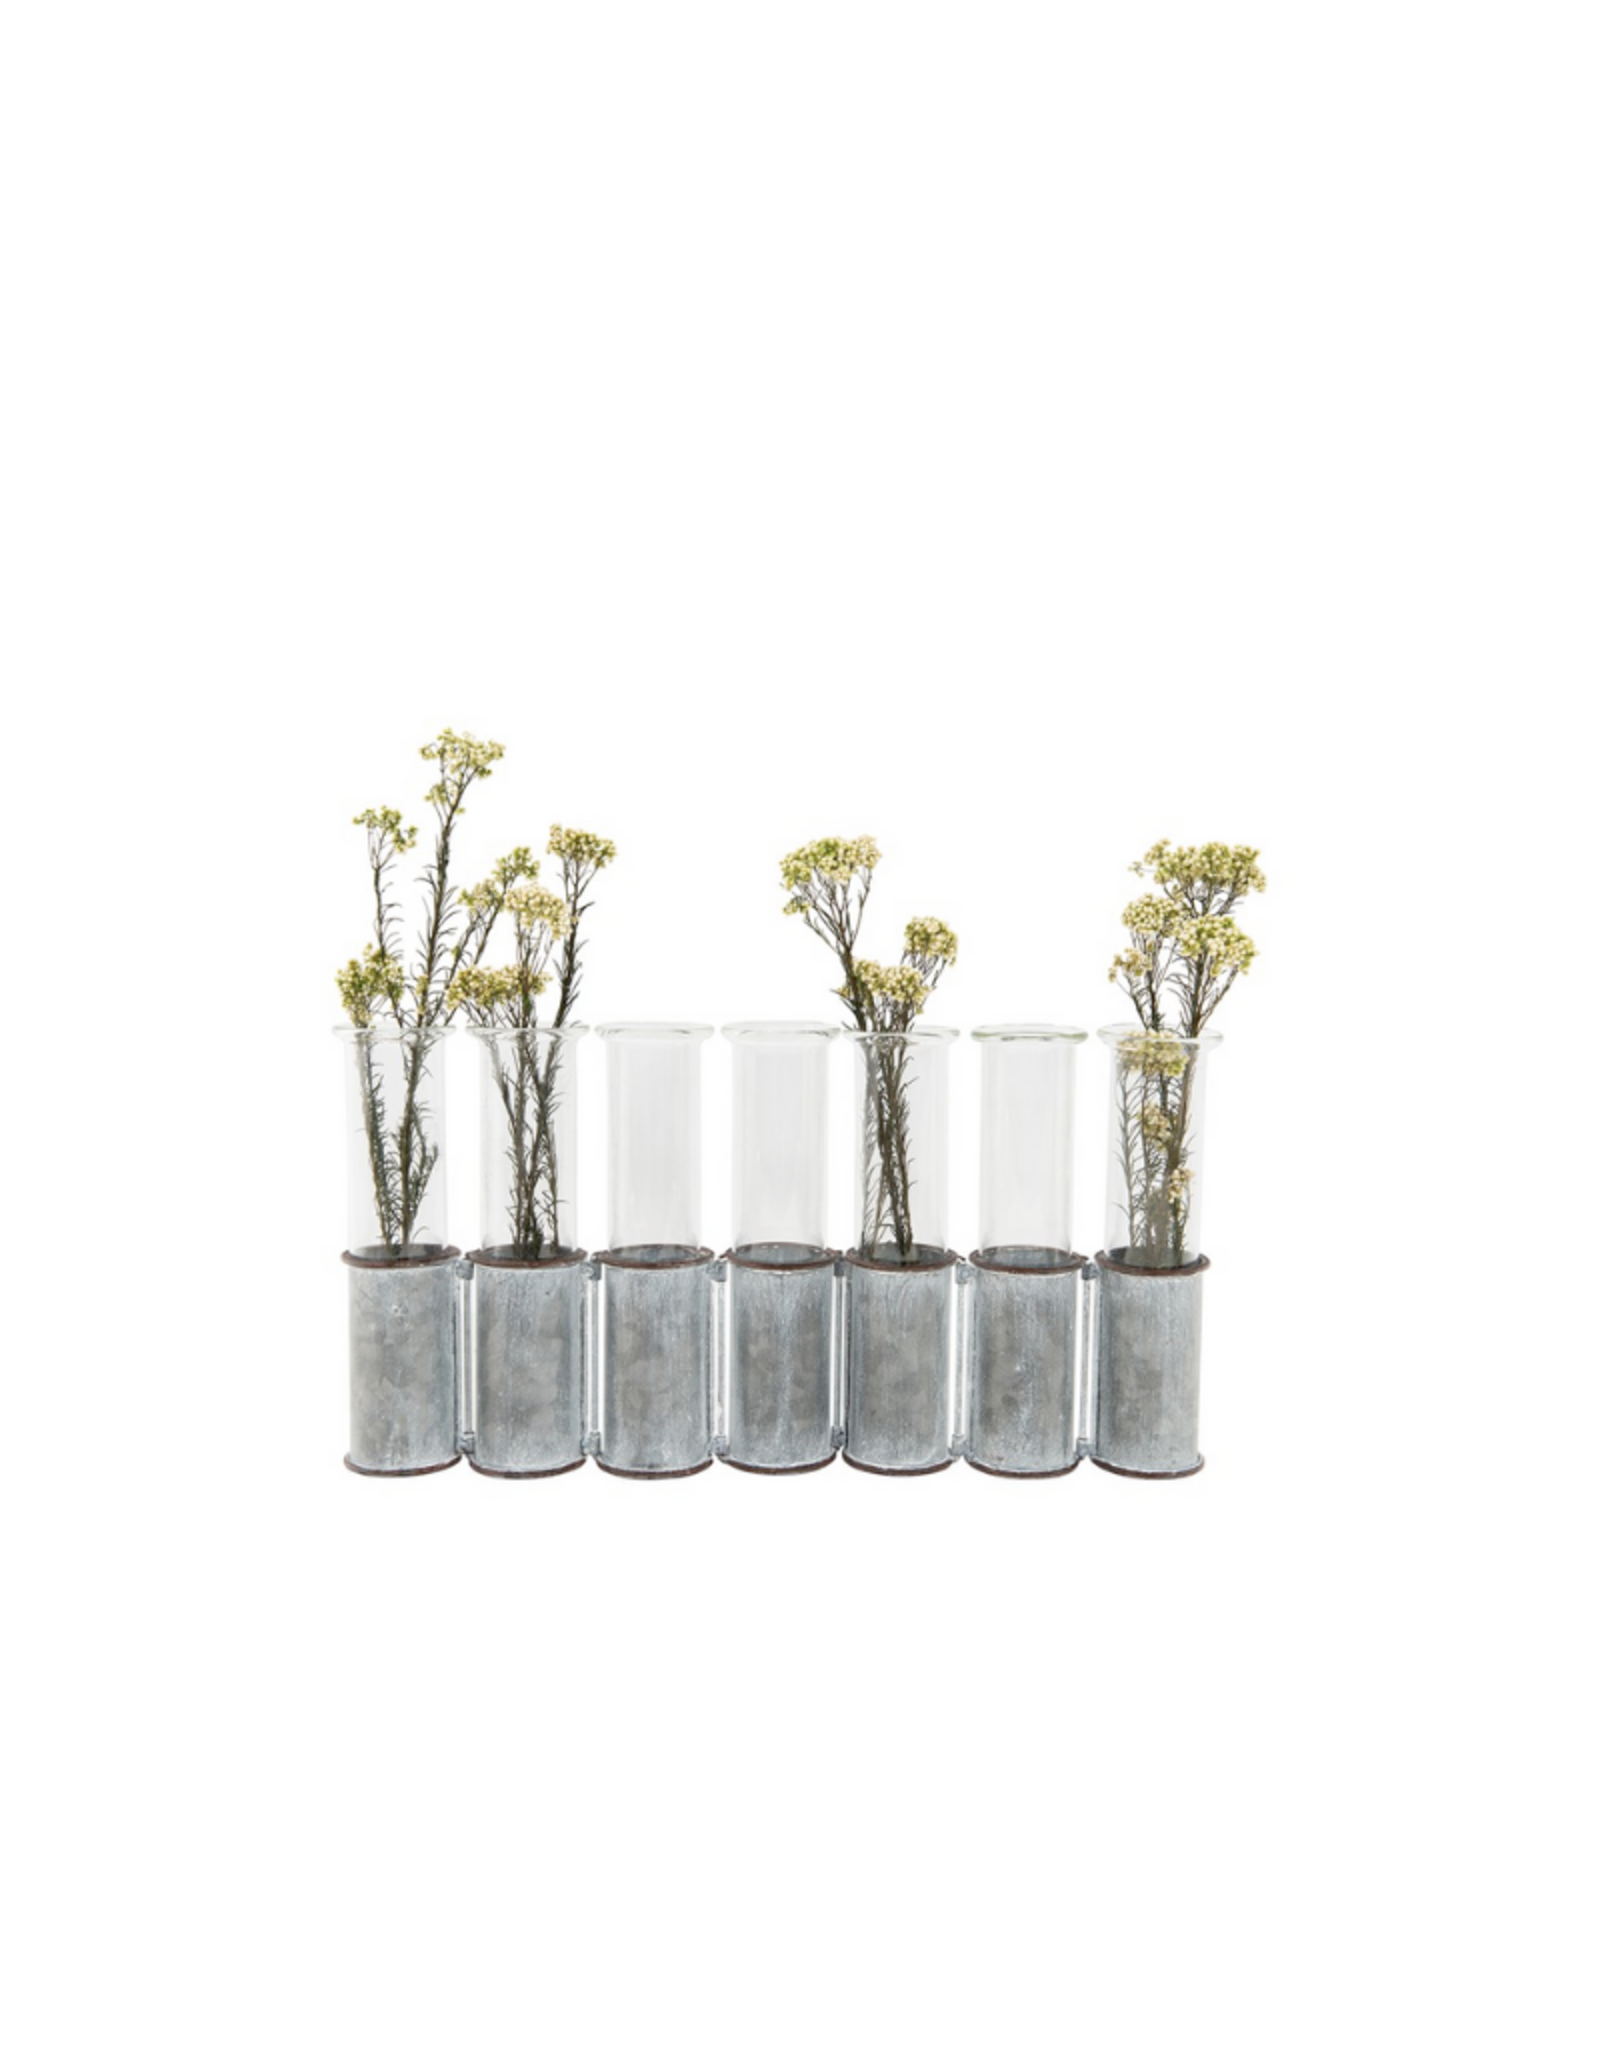 VASE-METAL STAND W/ GLASS (SET OF 8)